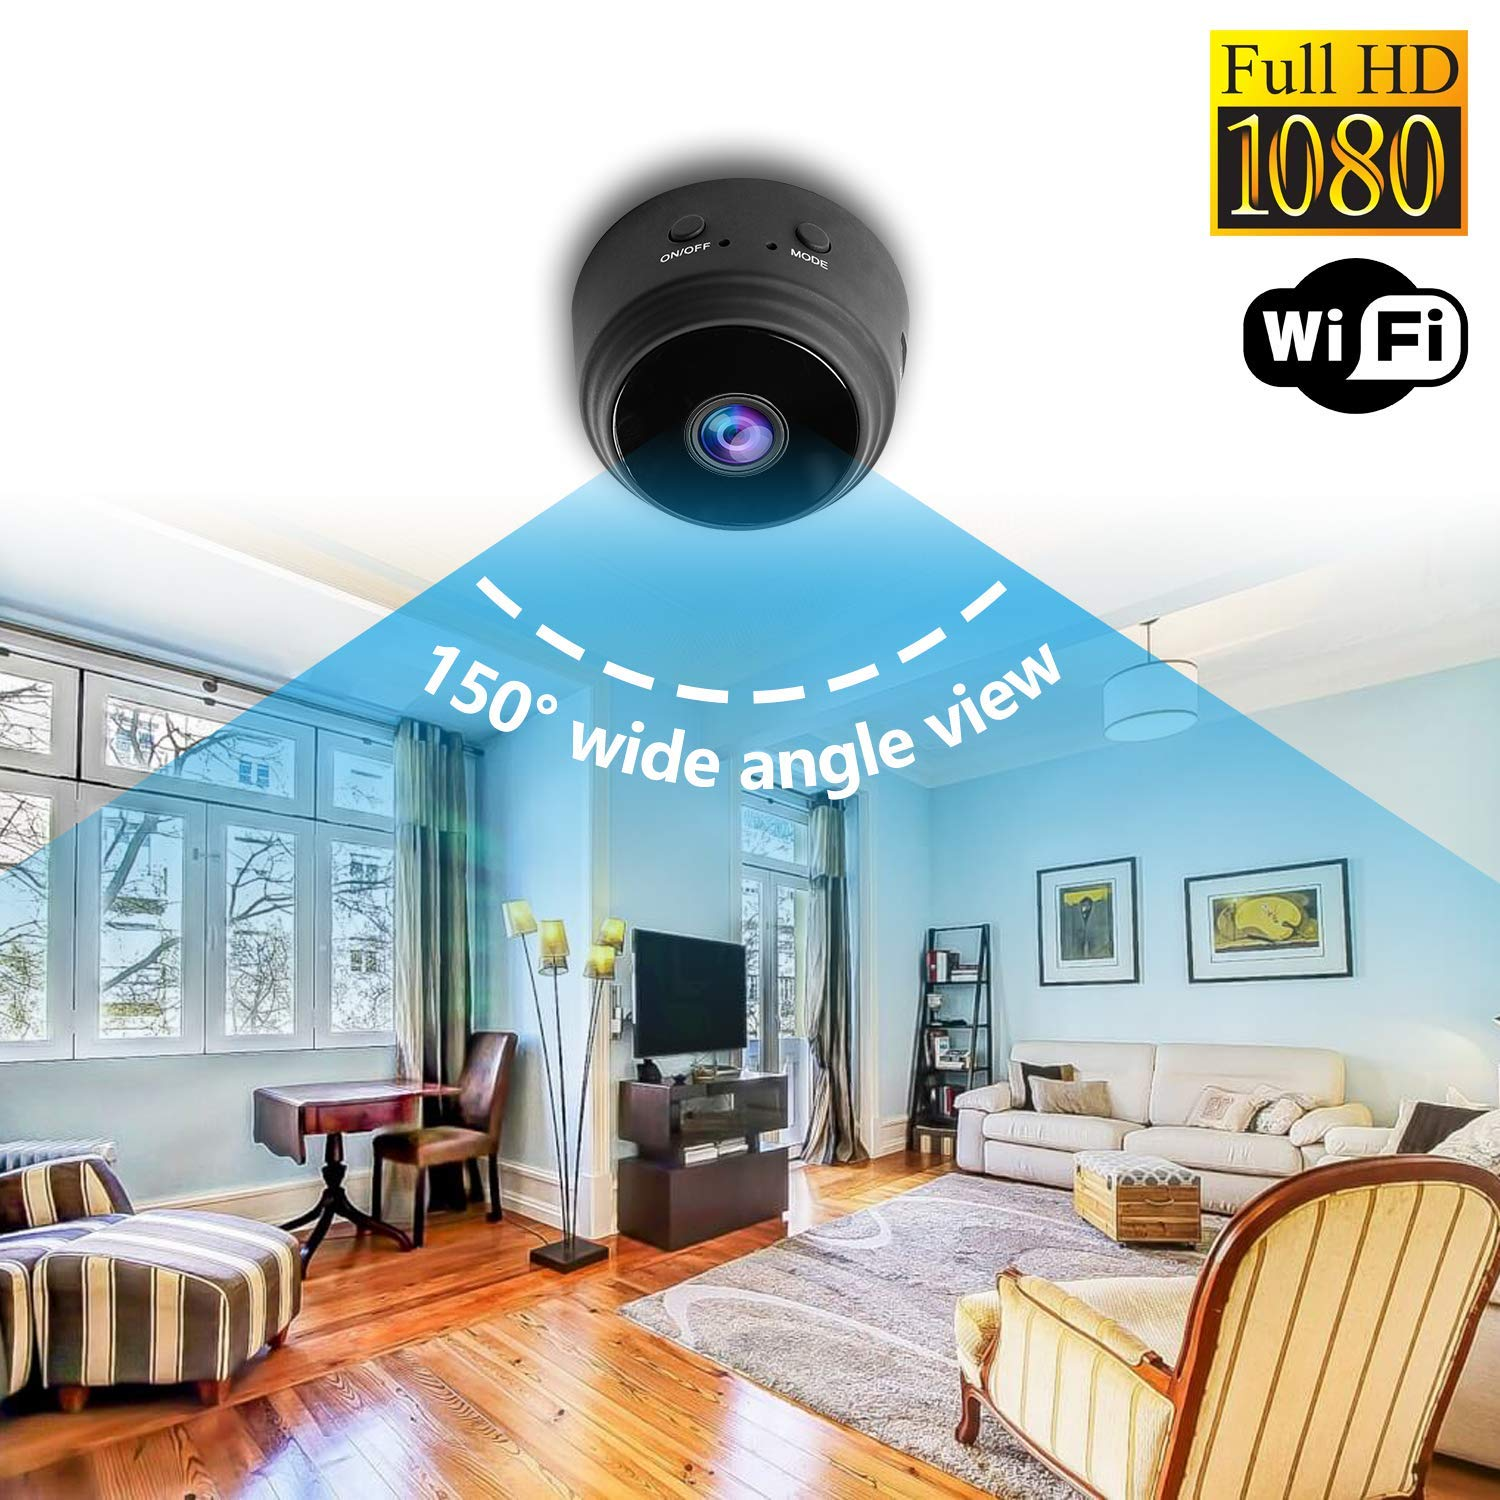 Mini Wireless IP Camera – TOTUOKEY Wi-Fi 1080P Camera Motion Detection Night Vision Hidden Camera Nanny Cam Wireless IP Security Wall Mount Home Camera Remote Control Android iOS Free App PC View